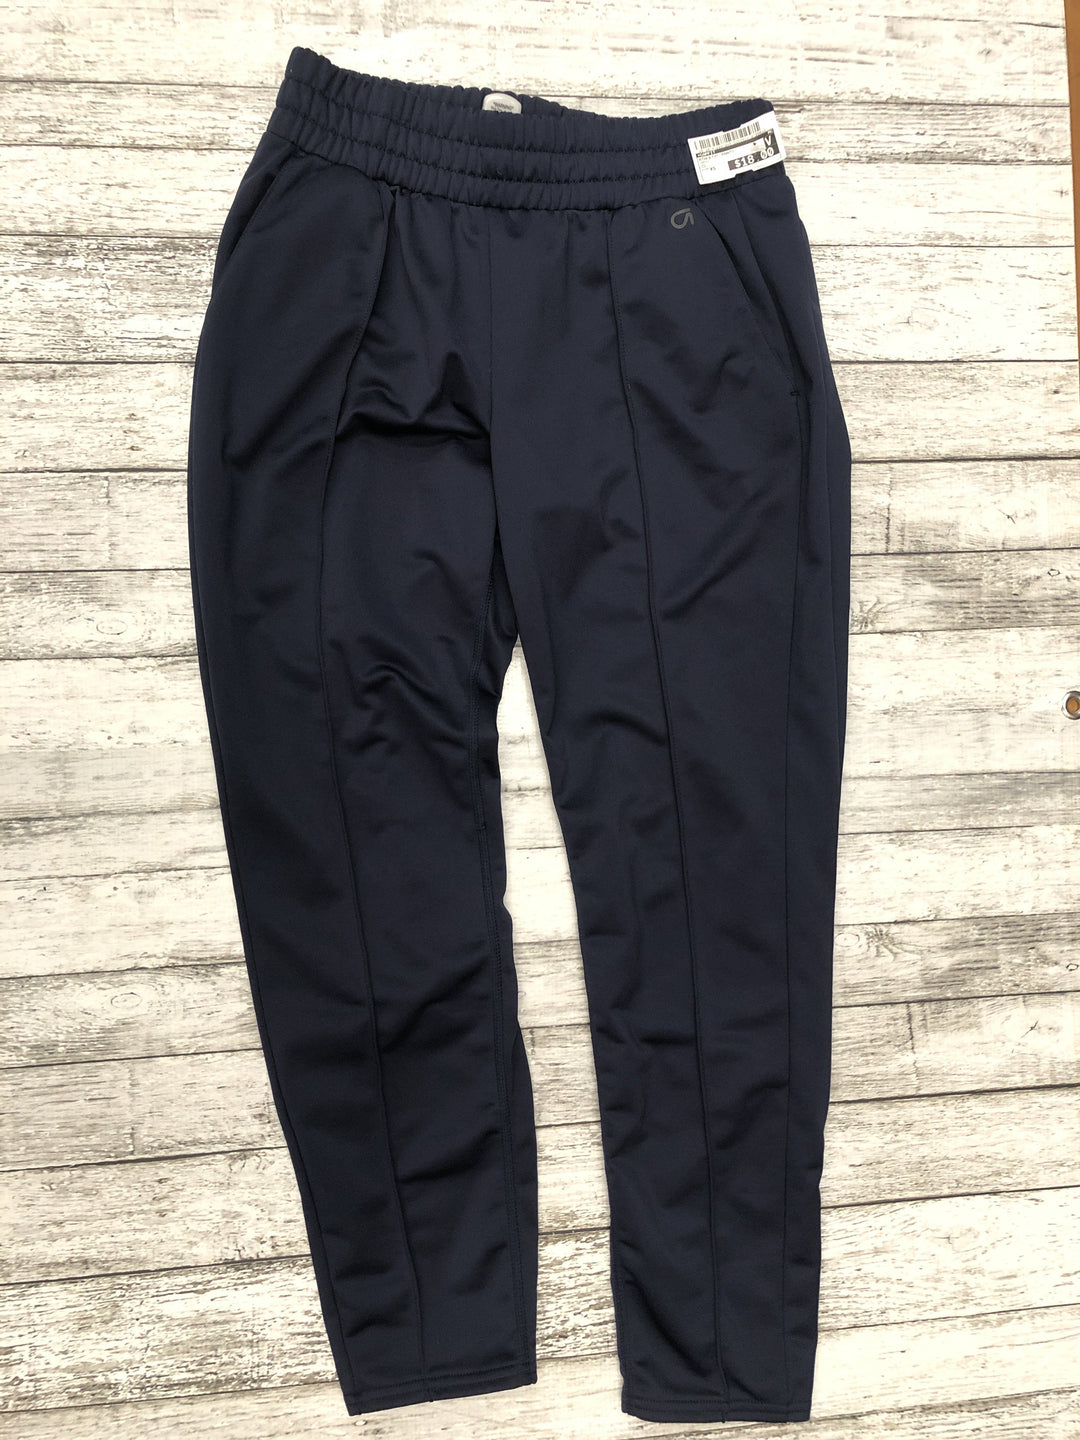 Primary Photo - brand: gapfit , style: athletic pants , color: navy , size: xs , sku: 126-3814-29979